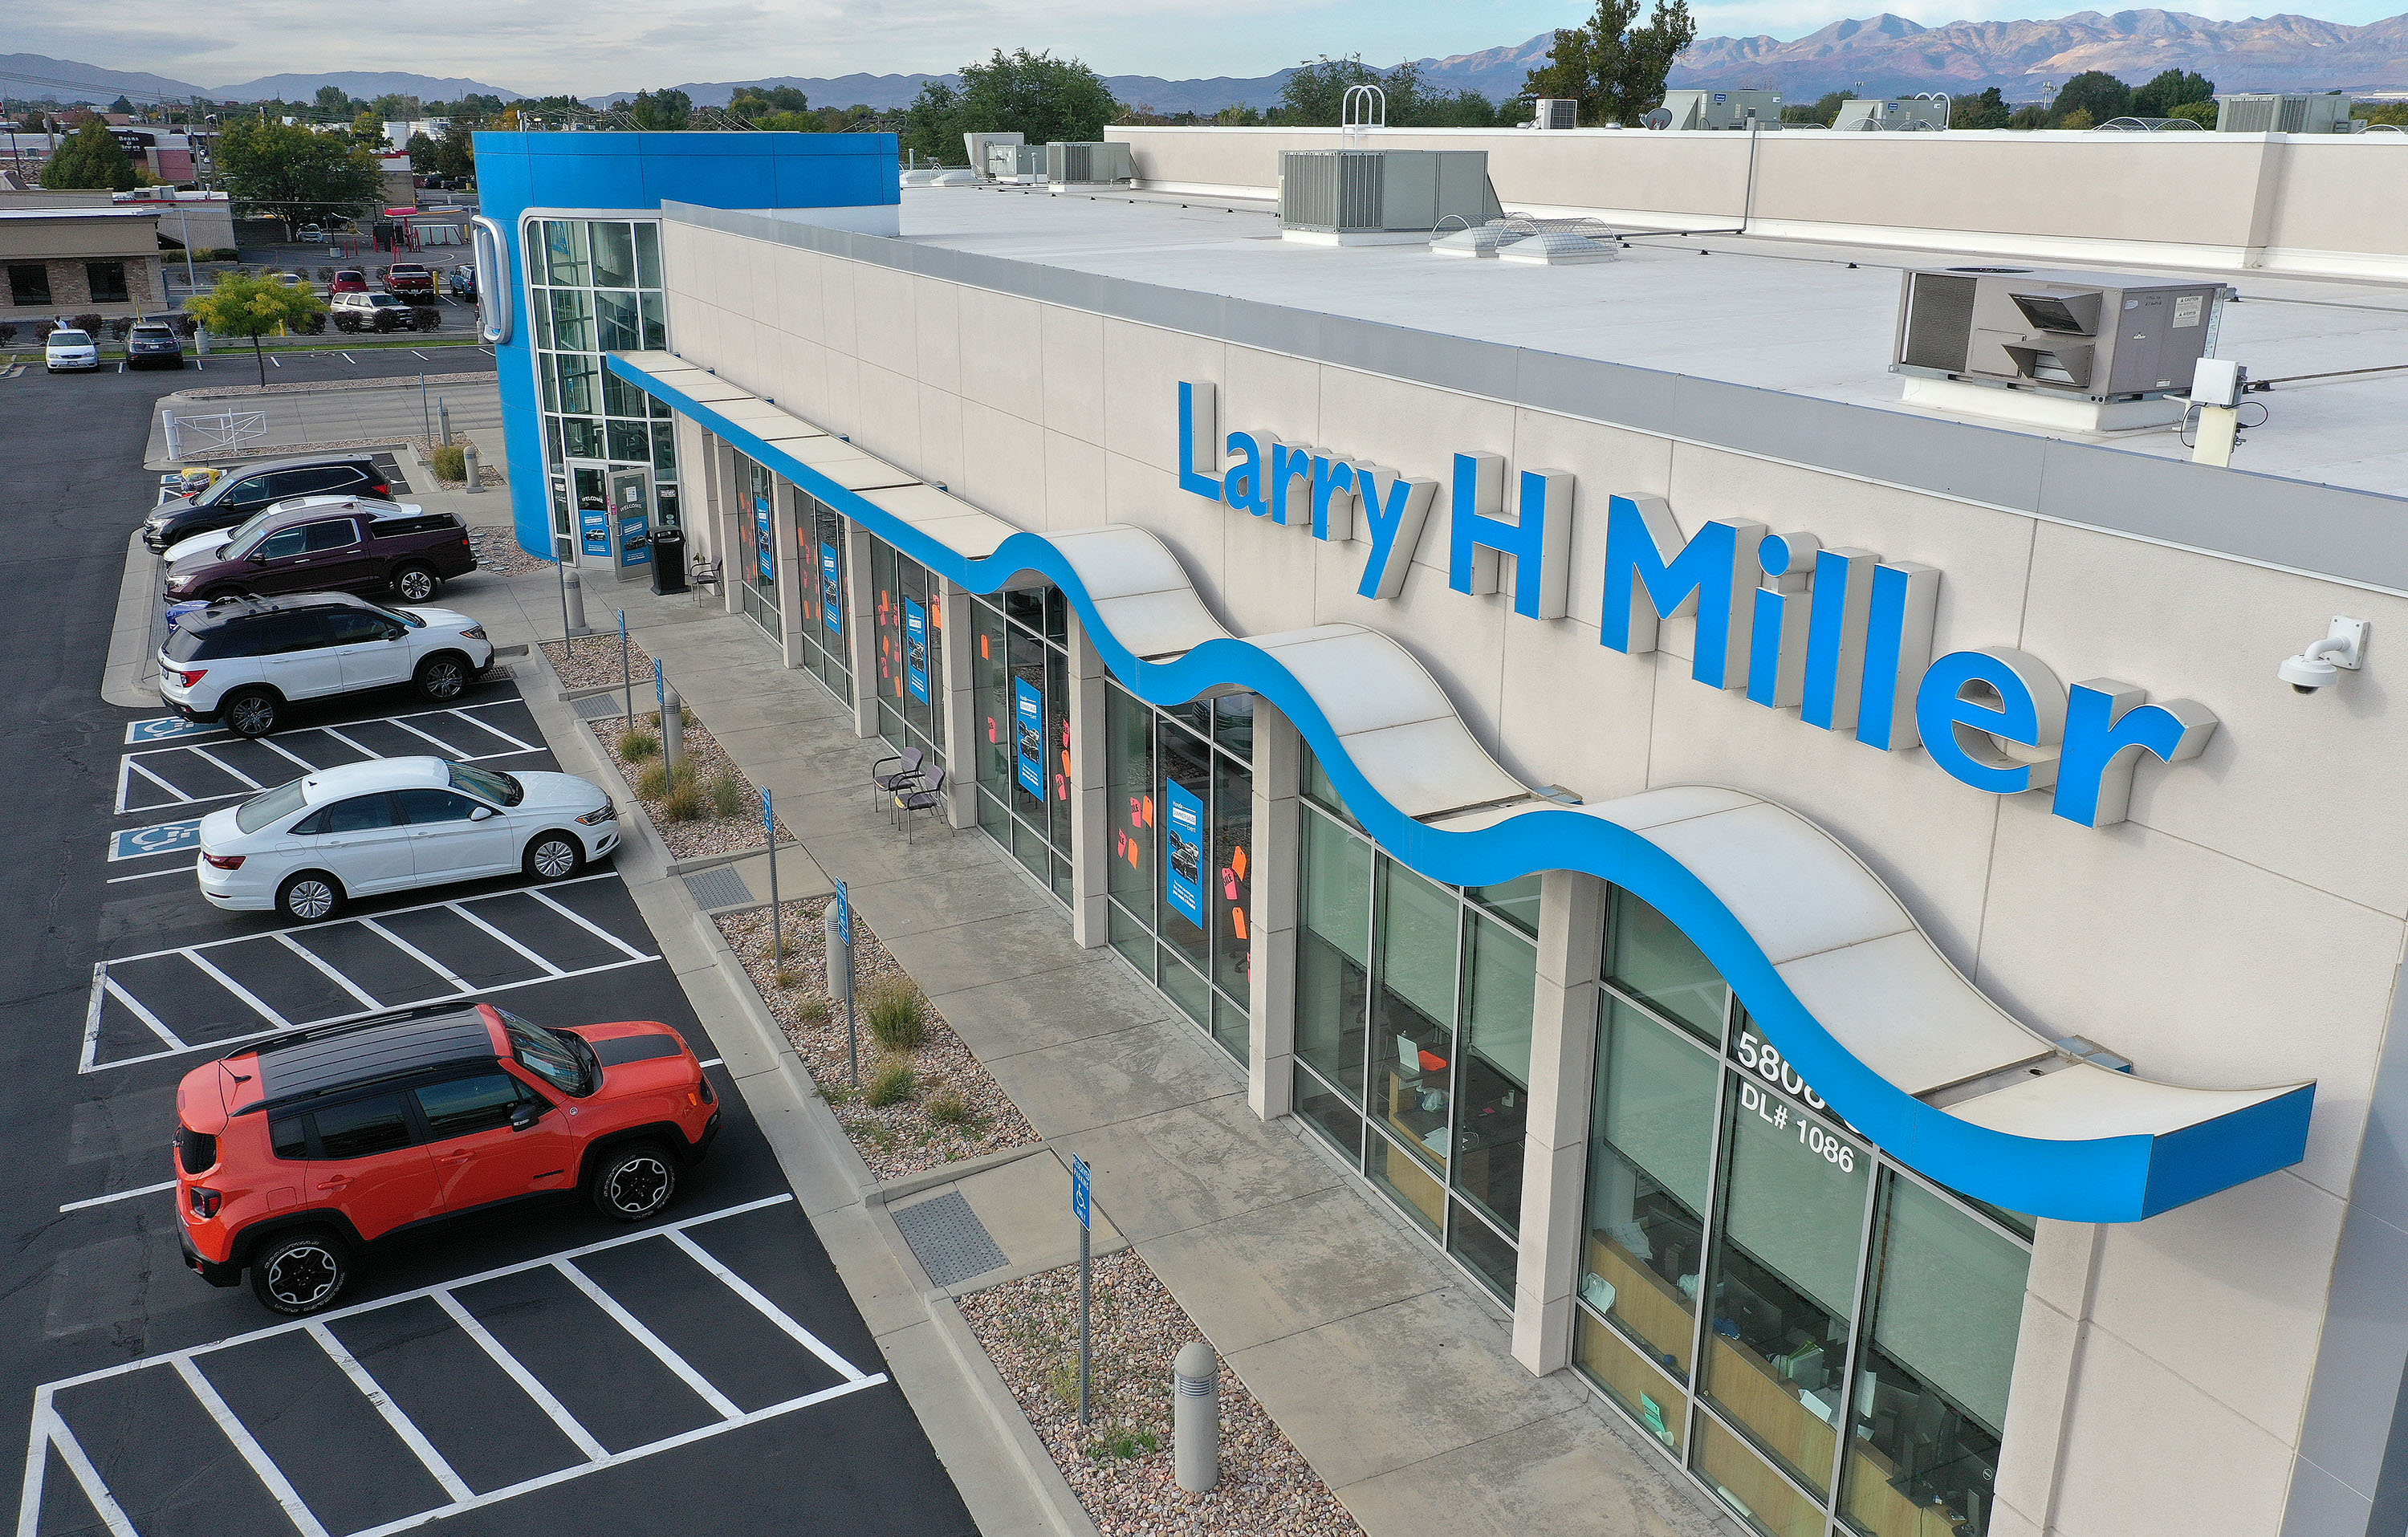 The Larry H. Miller Honda dealership in Murray is pictured on Wednesday, Sept. 29, 2021. Asbury Automotive Group Inc. entered into a definitive agreement to acquire Larry H. Miller Dealerships, the eighth-largest dealer group in the United States.